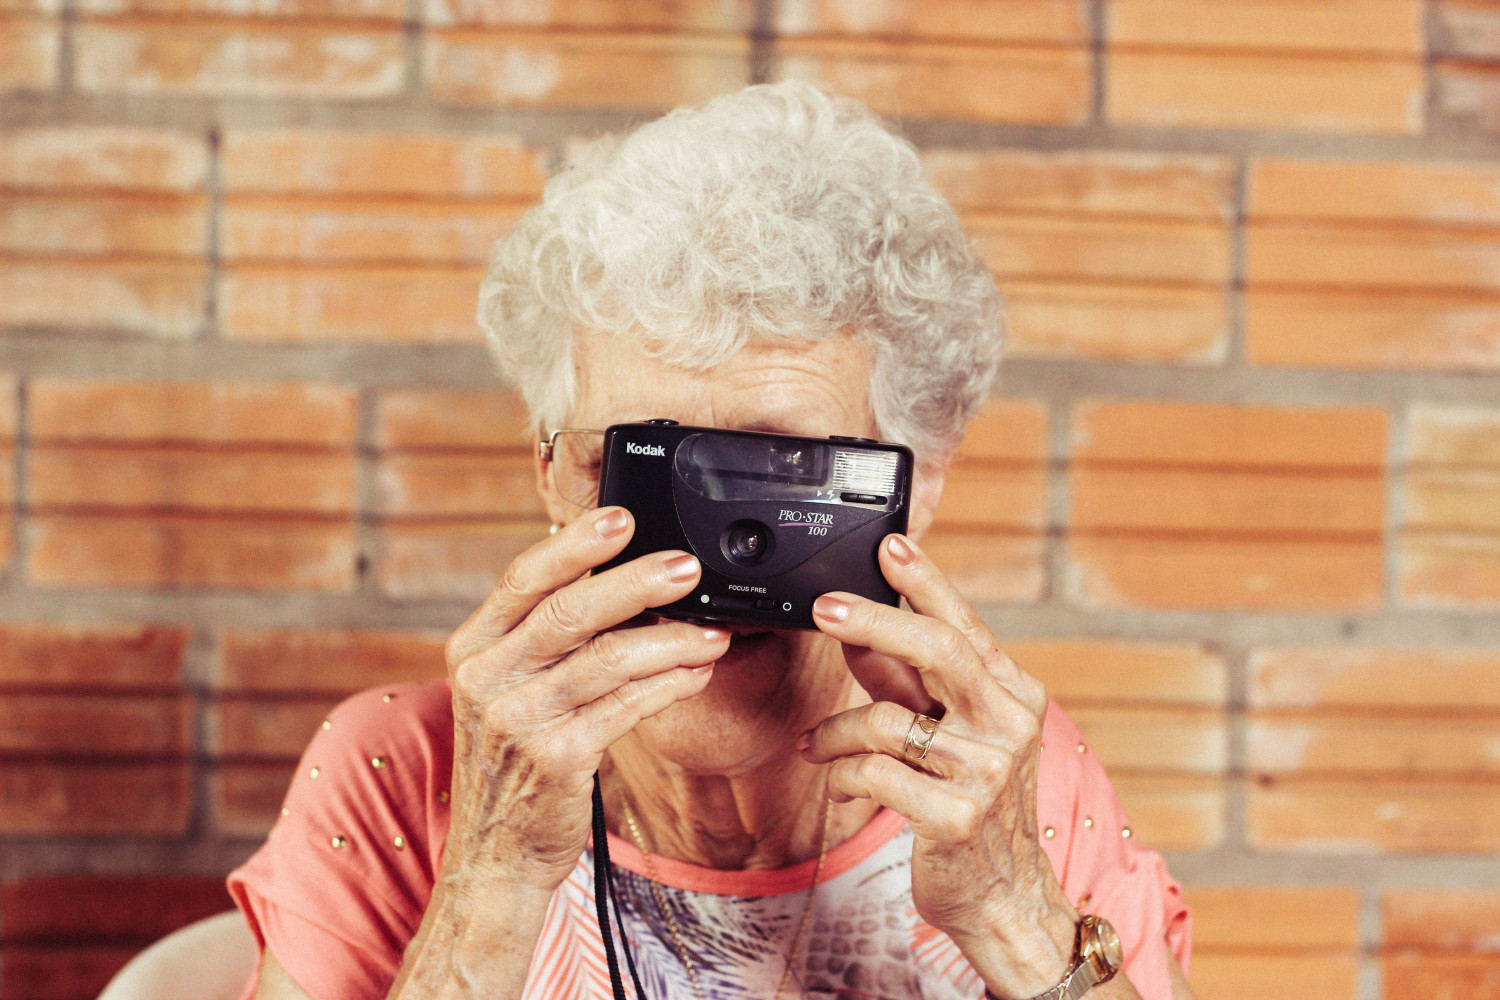 Image of an elderly woman holding up a camera to her face